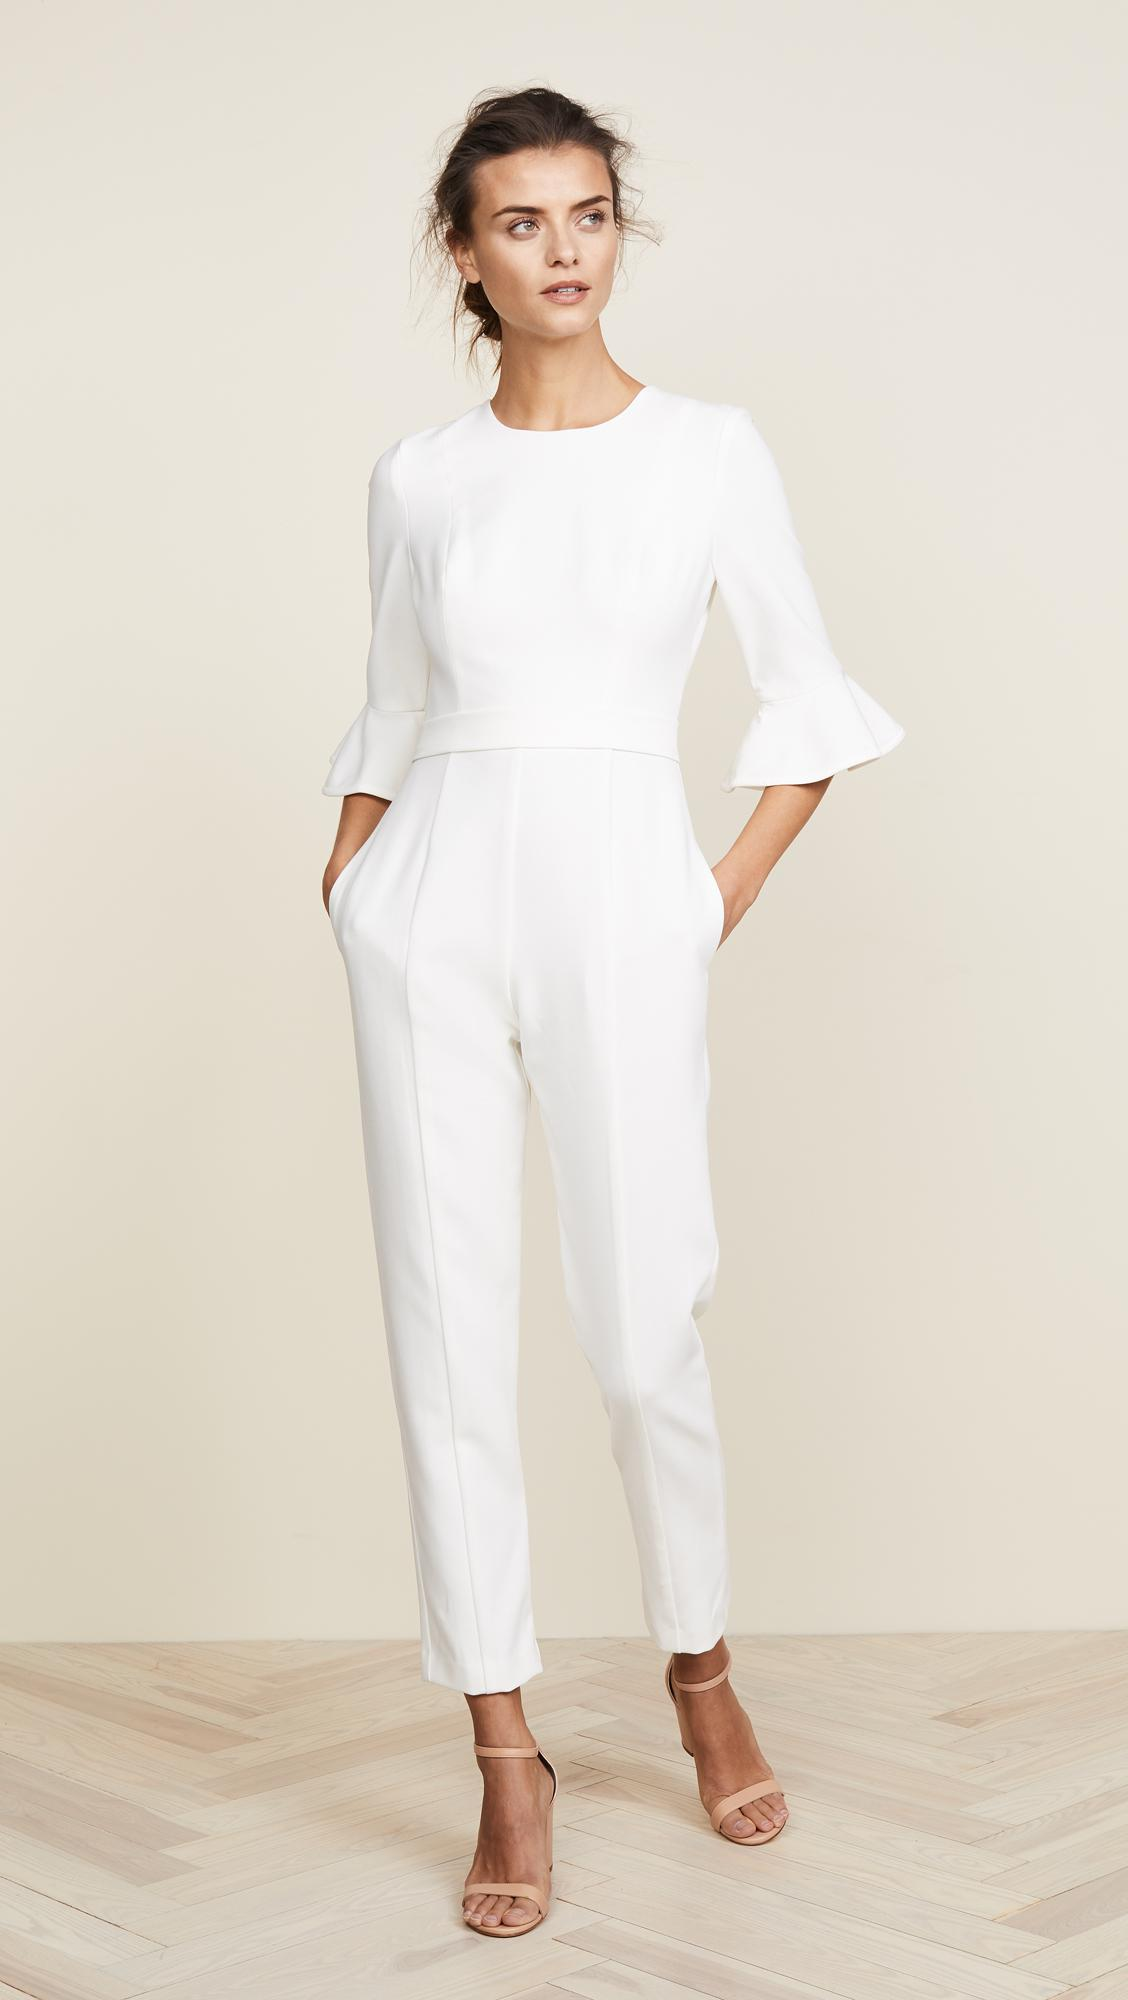 Black Halo Brooklyn Jumpsuit In White Save 7612456747404849 Lyst